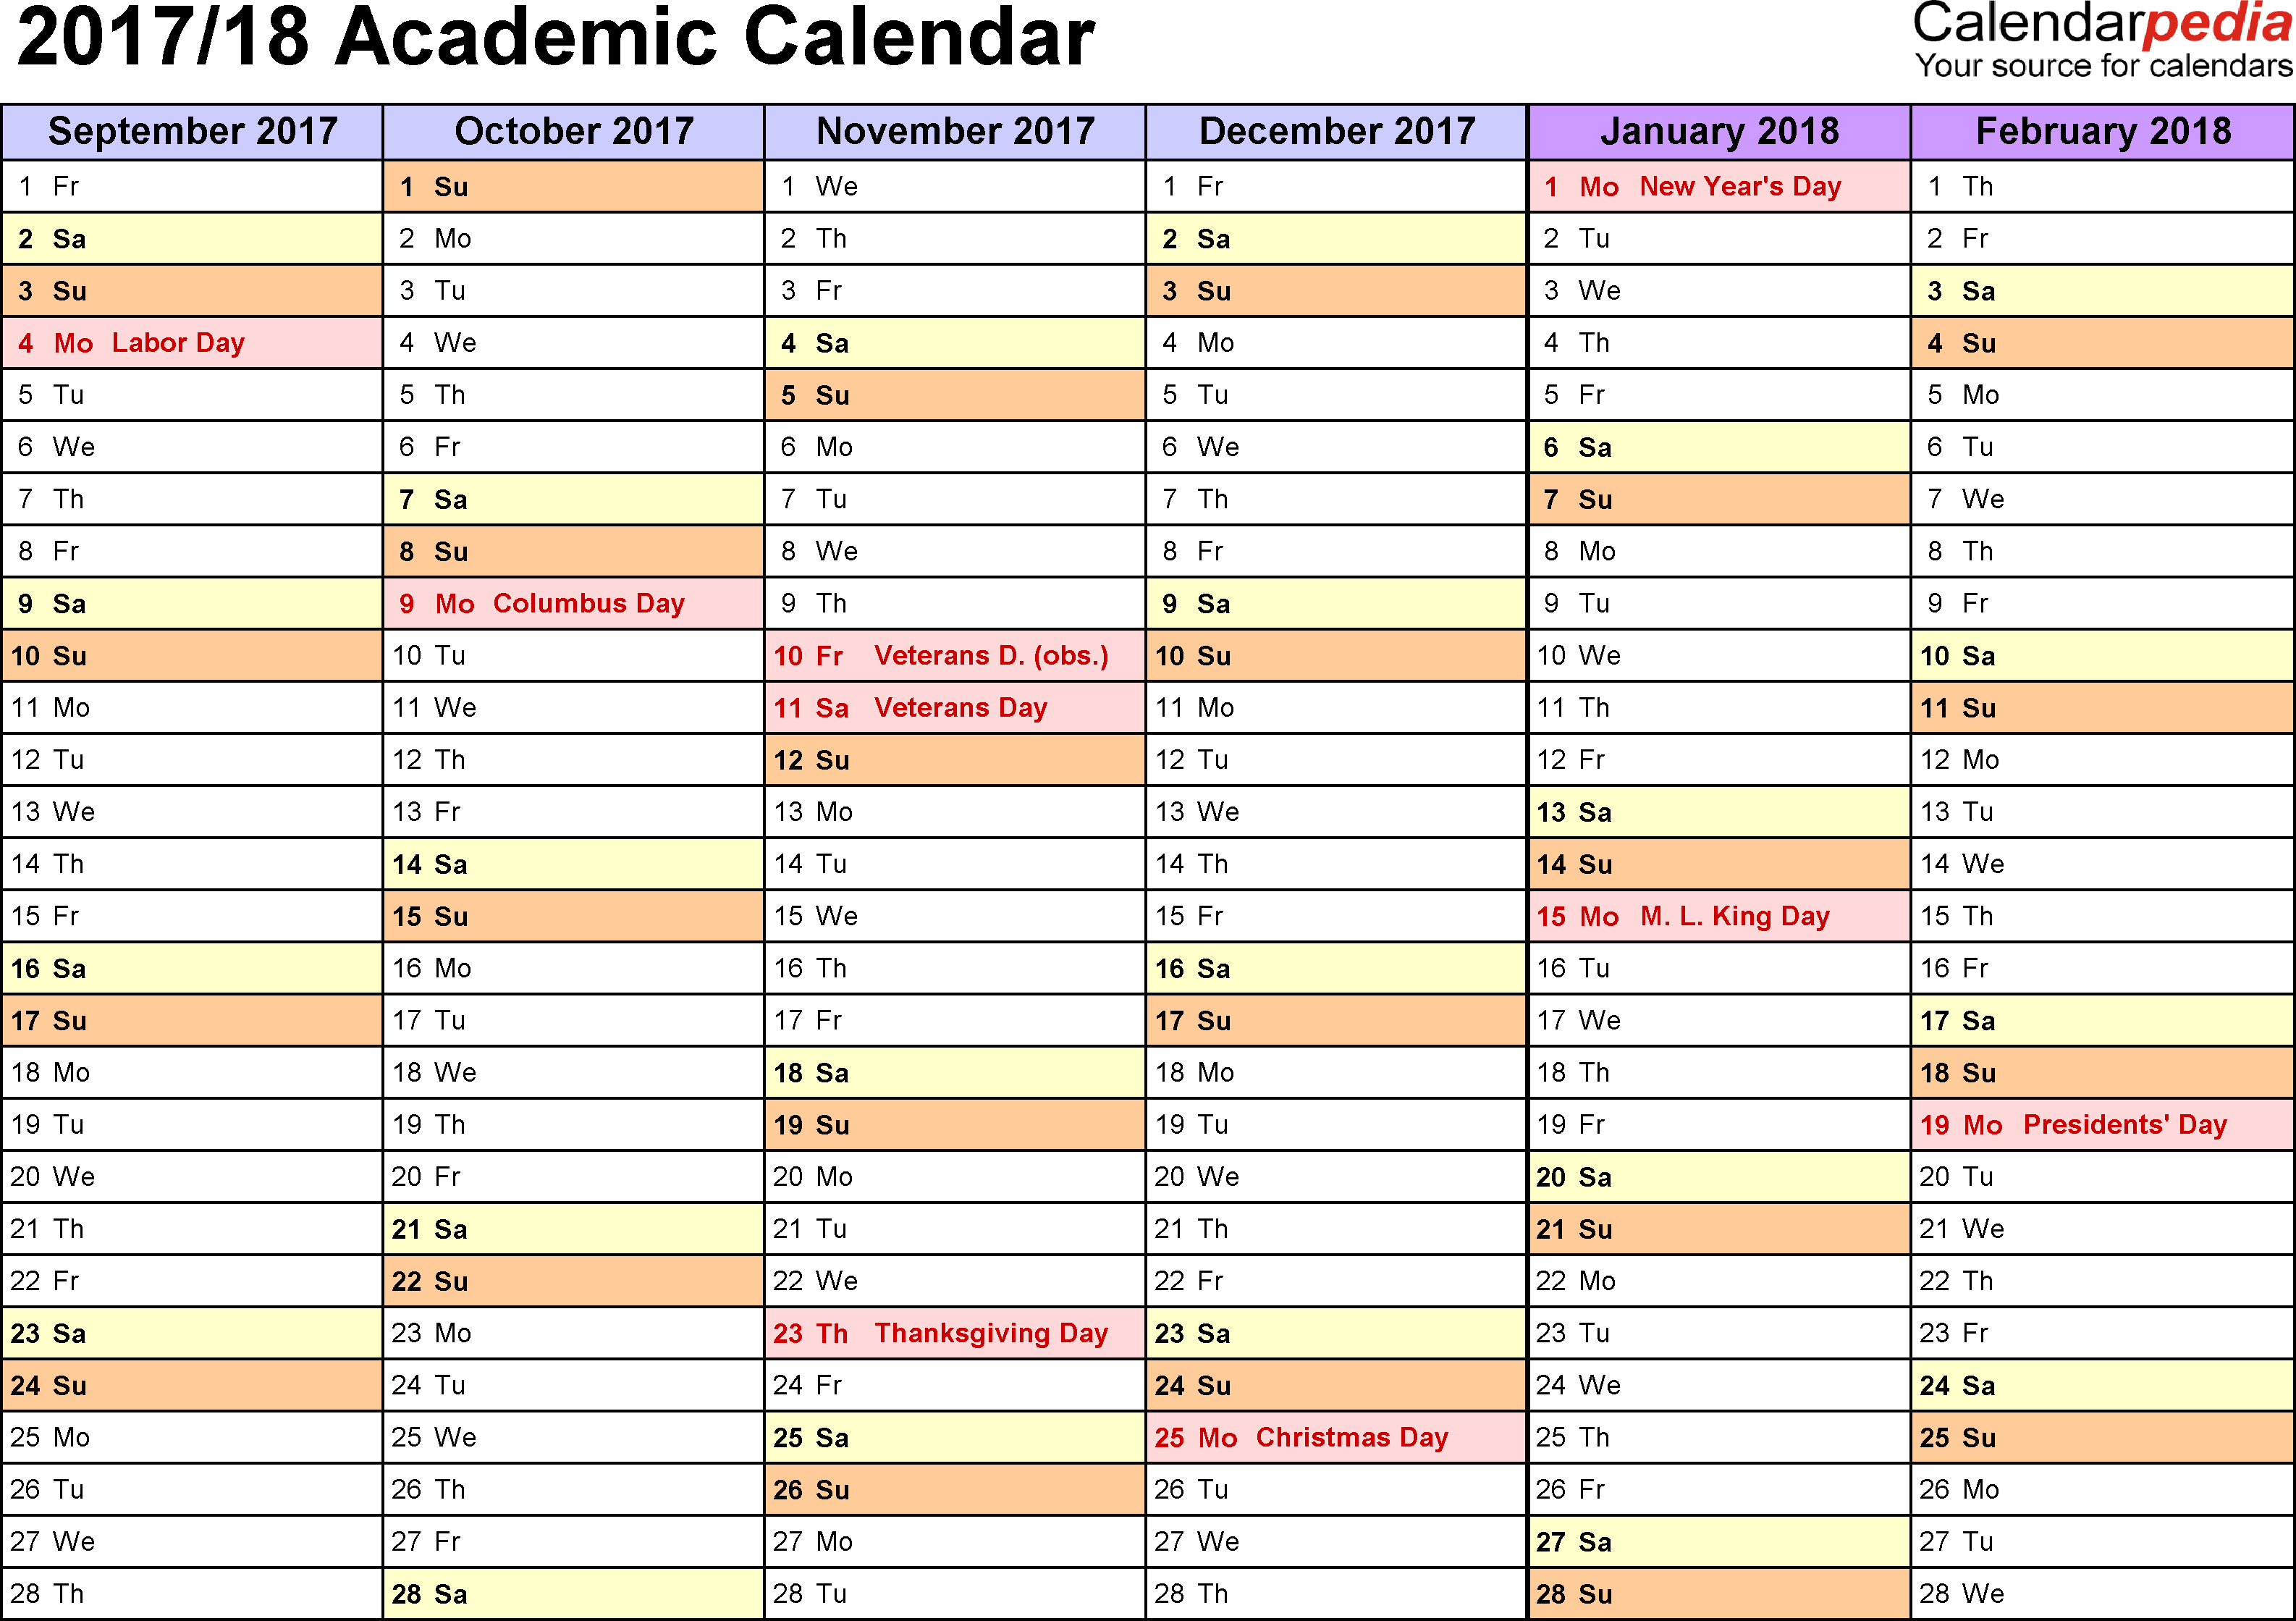 Template 3: Academic calendar 2017/18 for PDF, landscape orientation, months horizontally, 2 pages